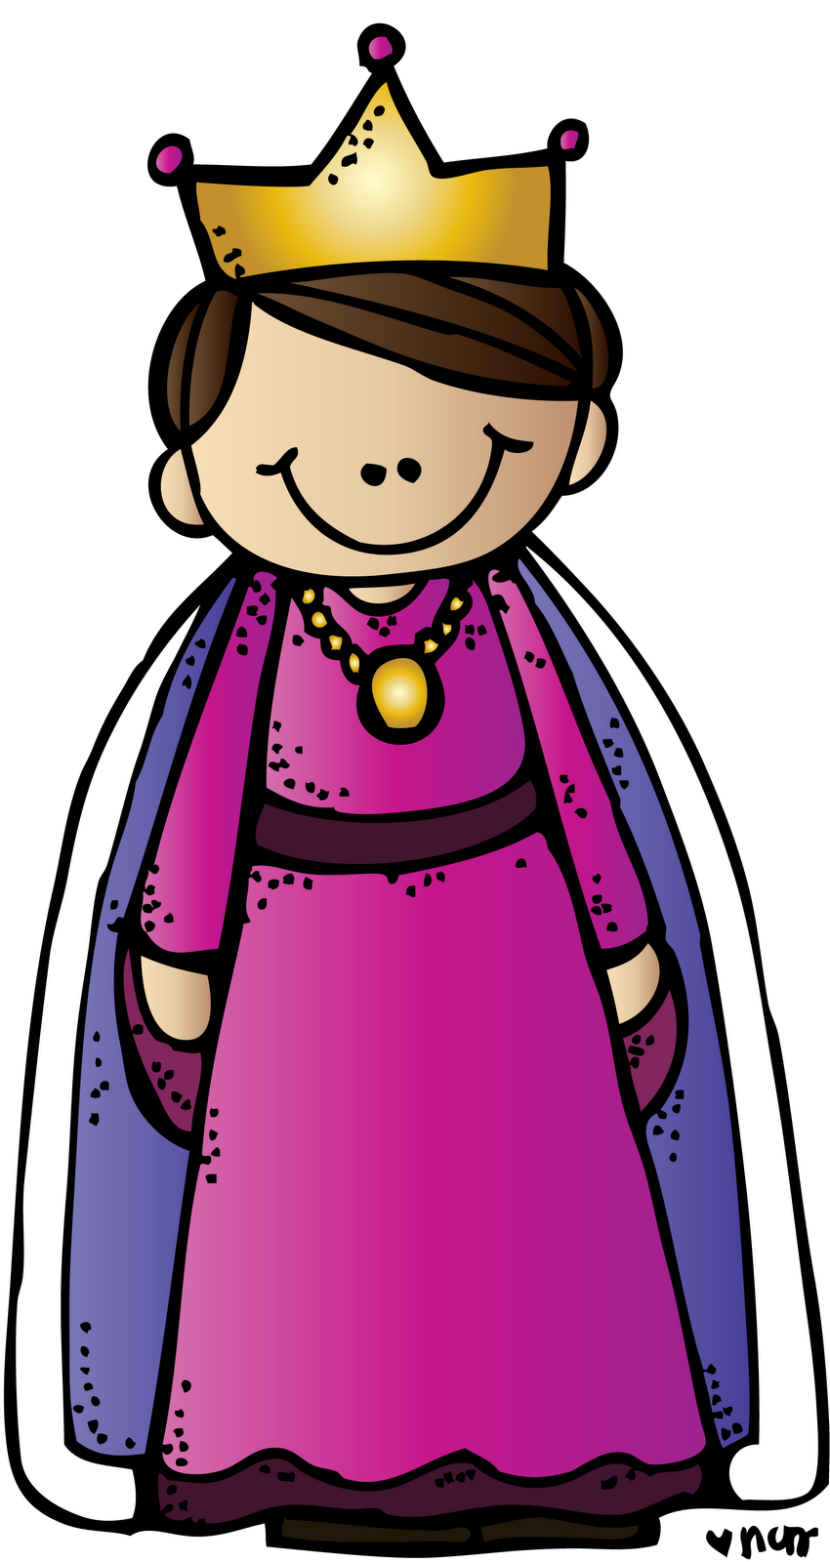 830x1562 Homecoming King Crown Clipart 830x1562.png Esther